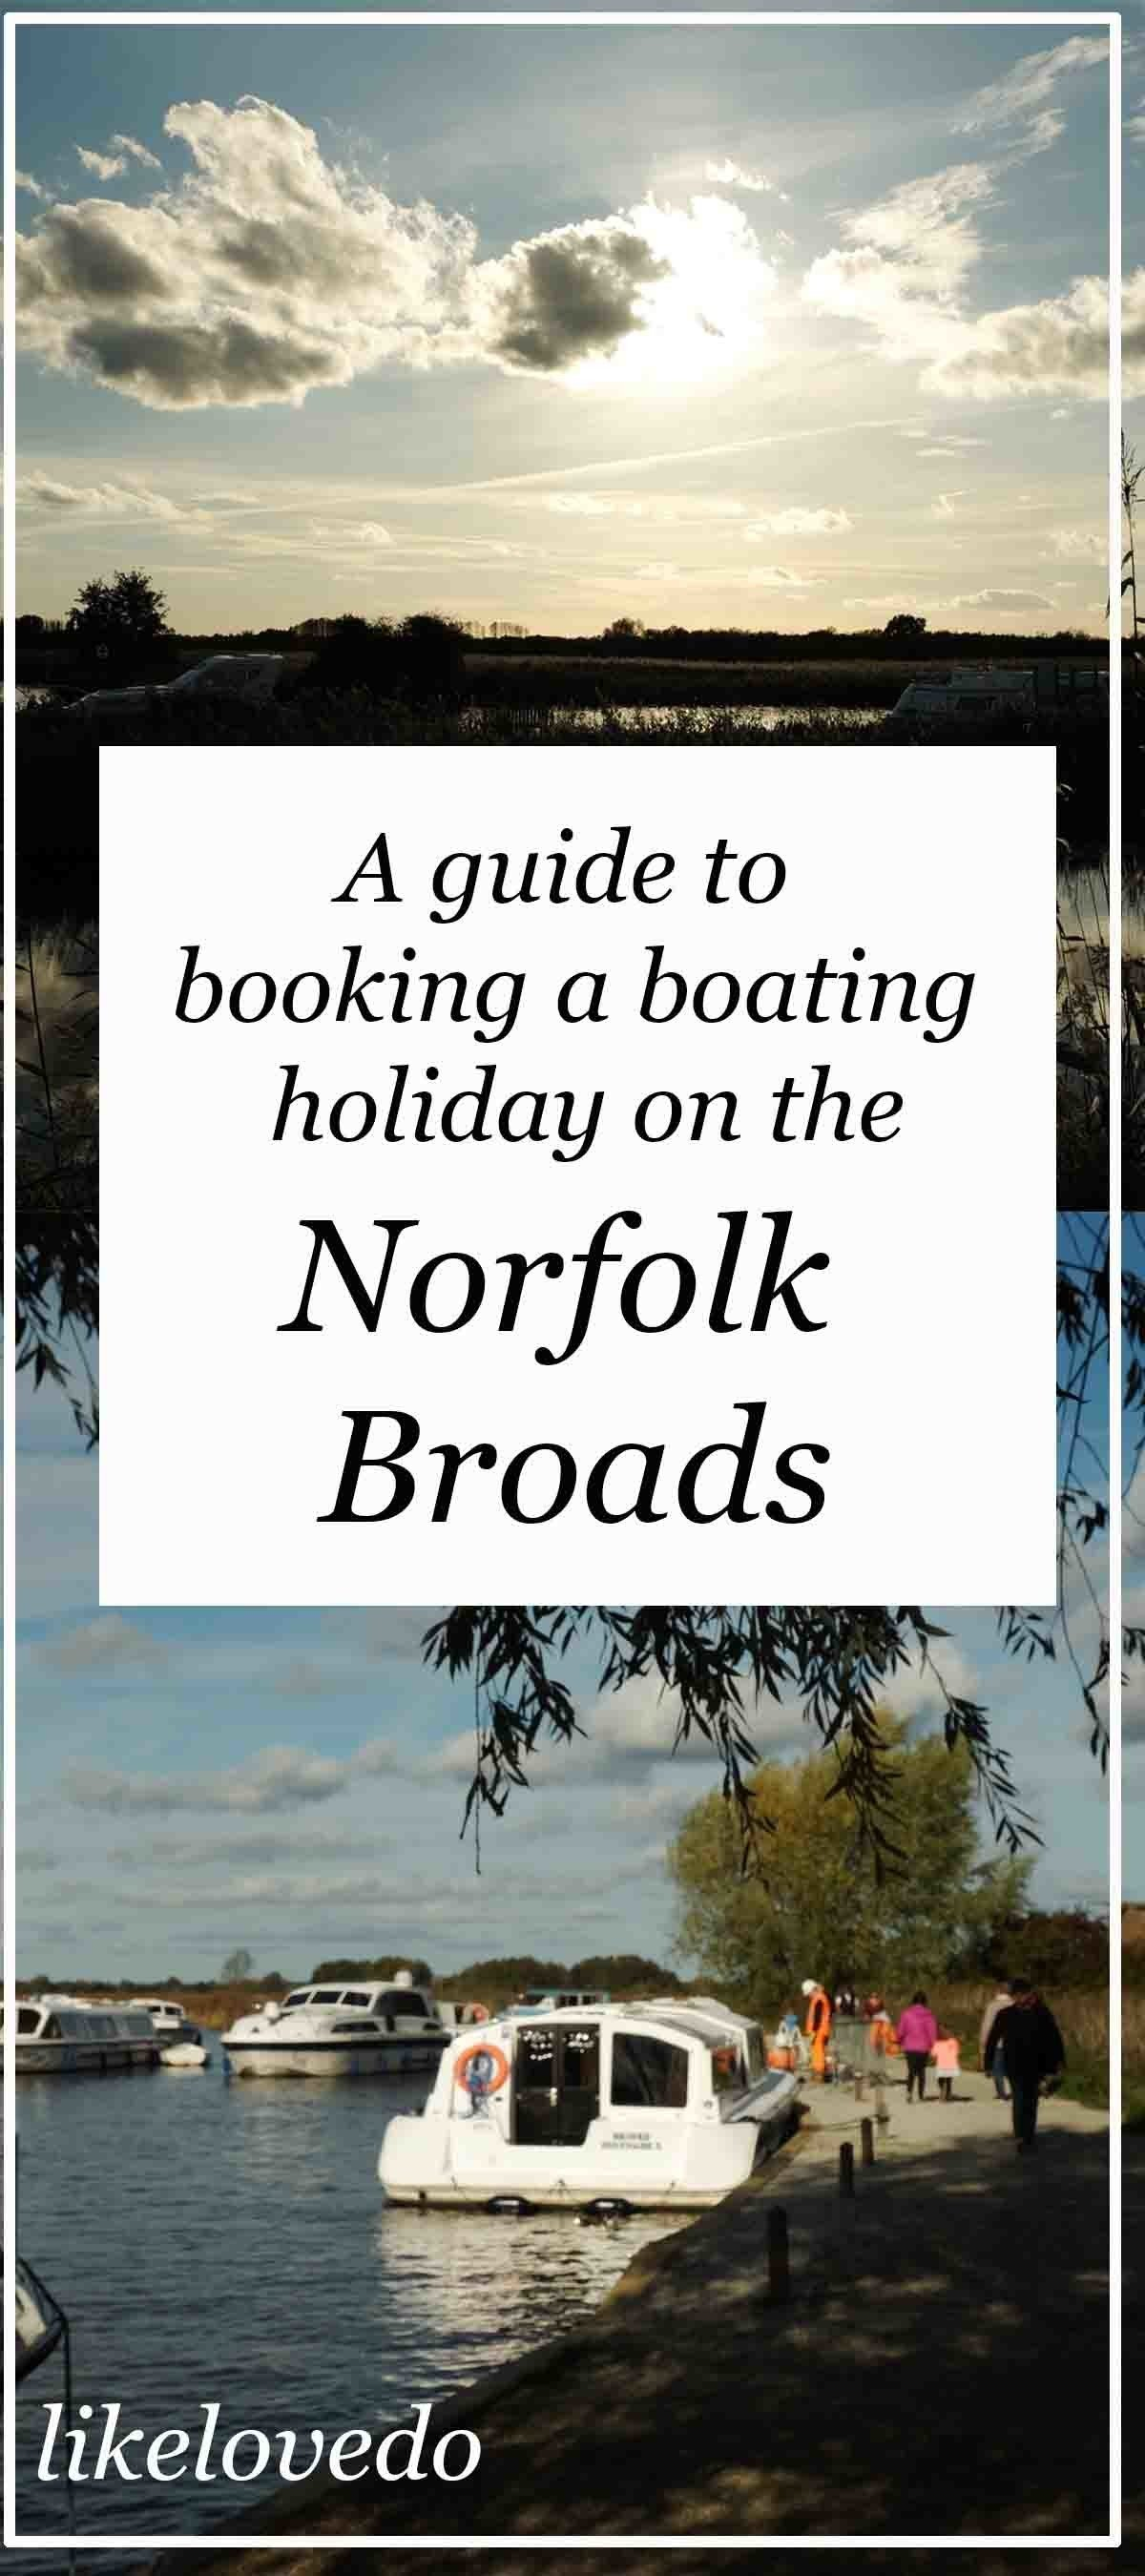 A guide to booking a boat trip on the Norfolk Broads own image